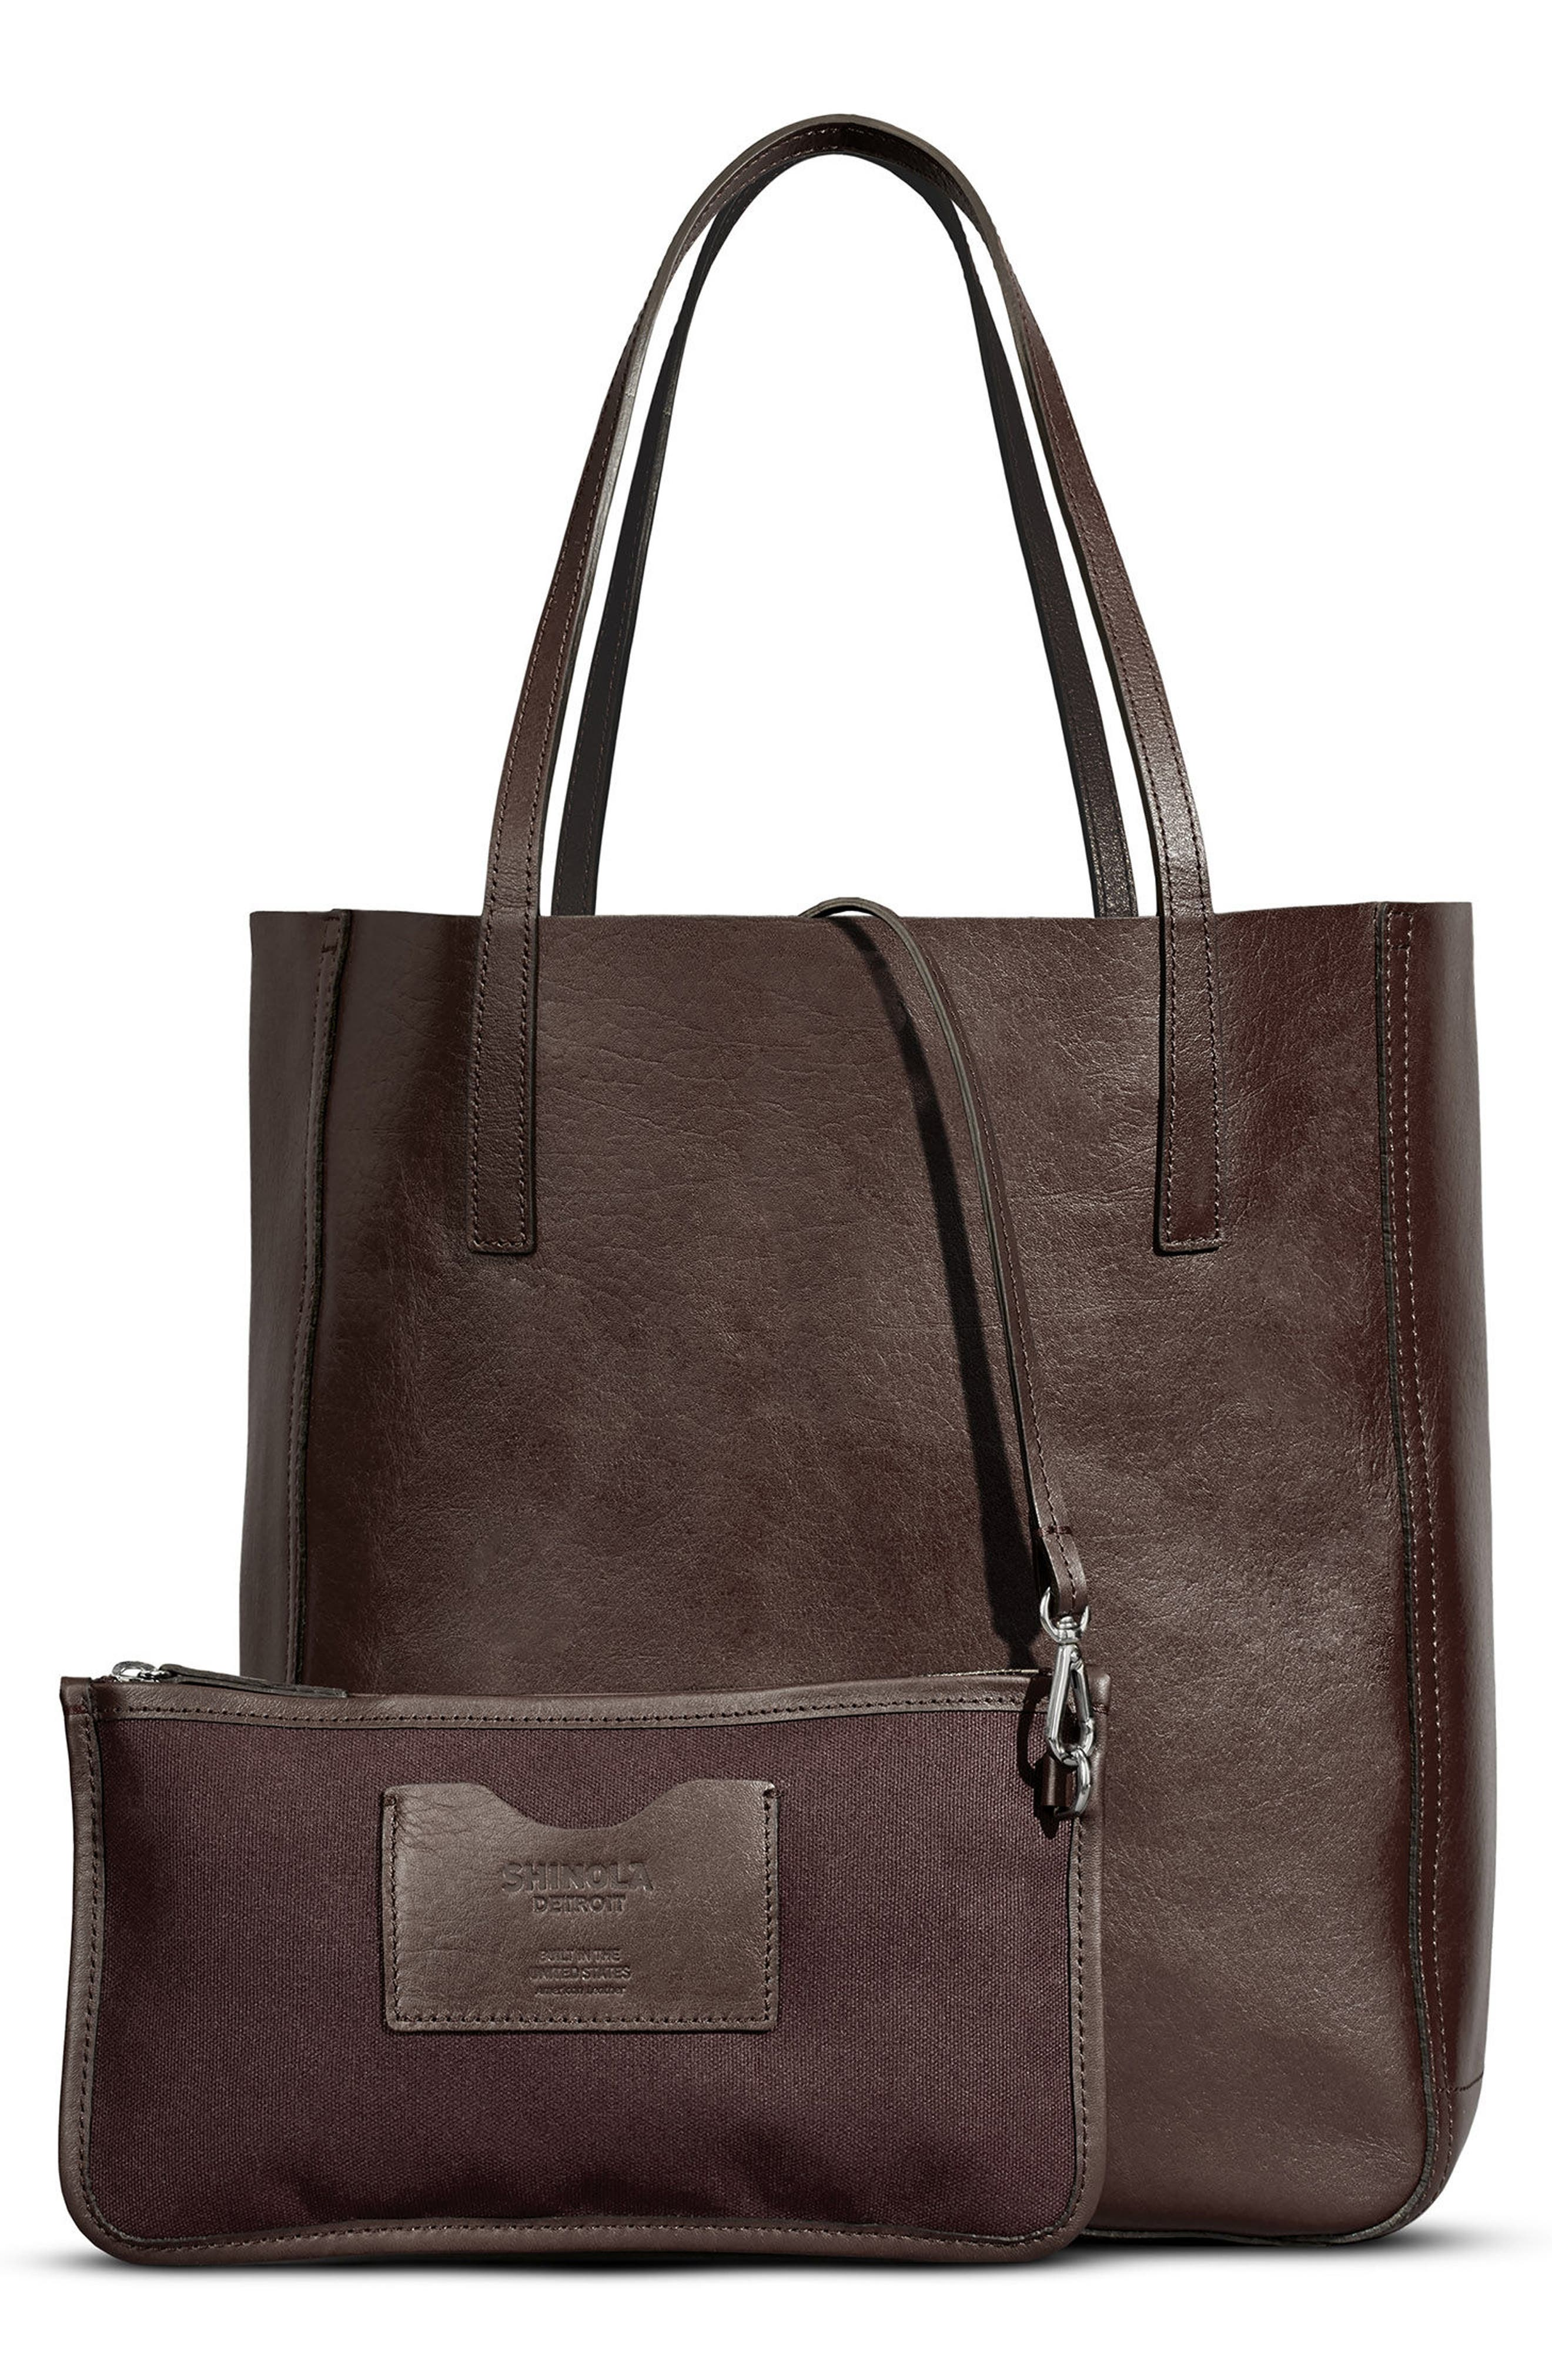 MEDIUM LEATHER SHOPPER - BROWN